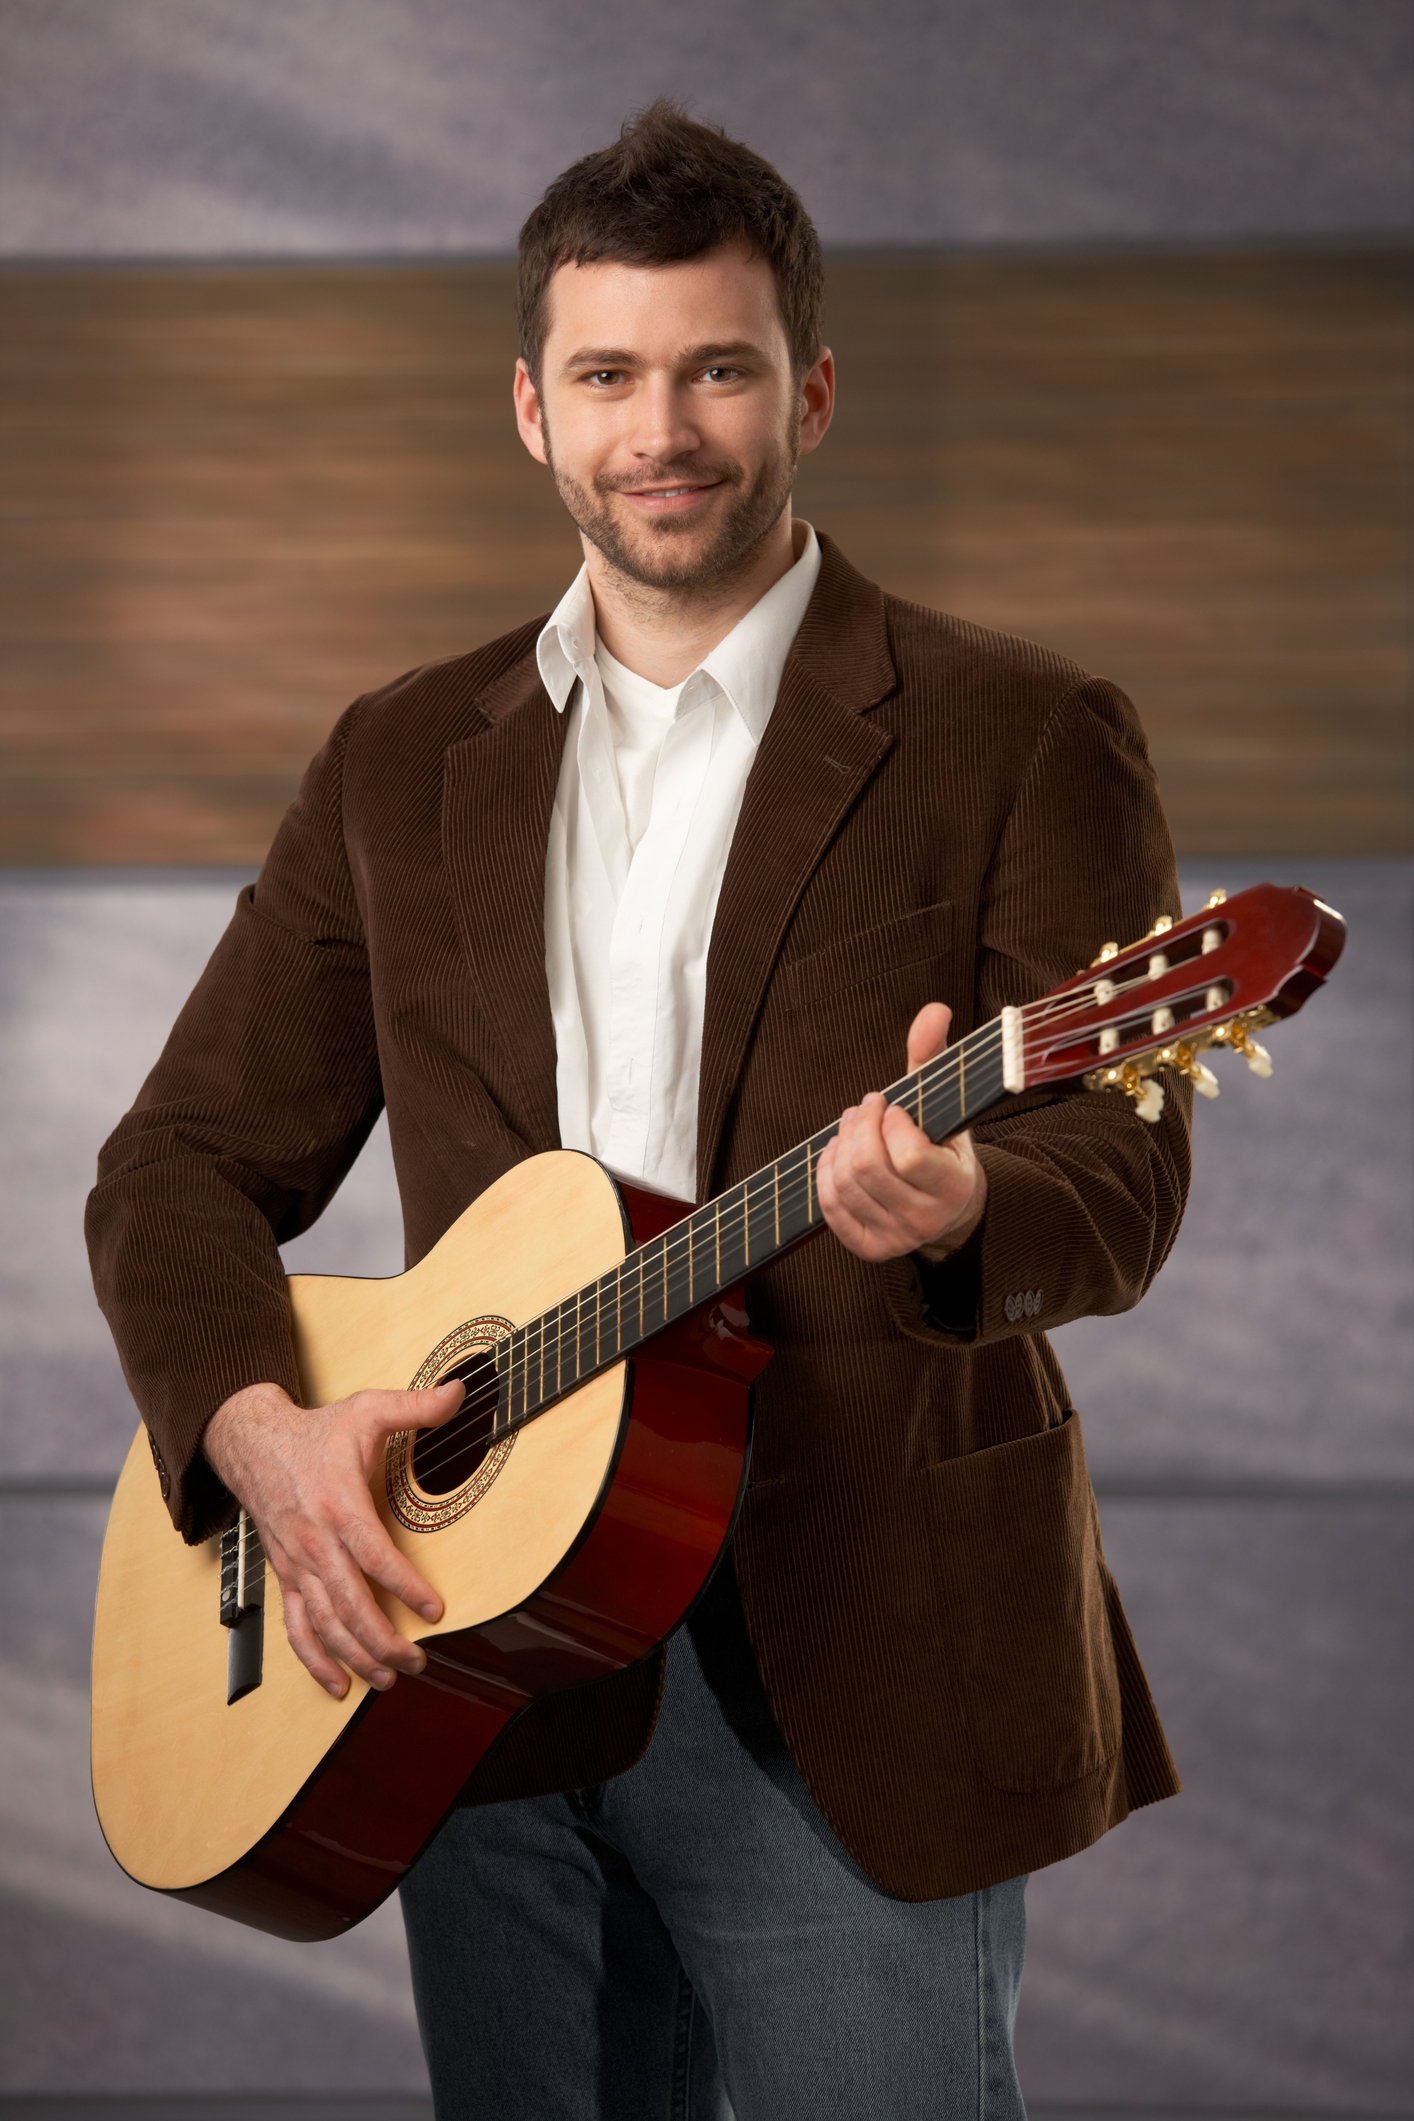 learn guitar solo the art of going solo learn guitar songs. Black Bedroom Furniture Sets. Home Design Ideas